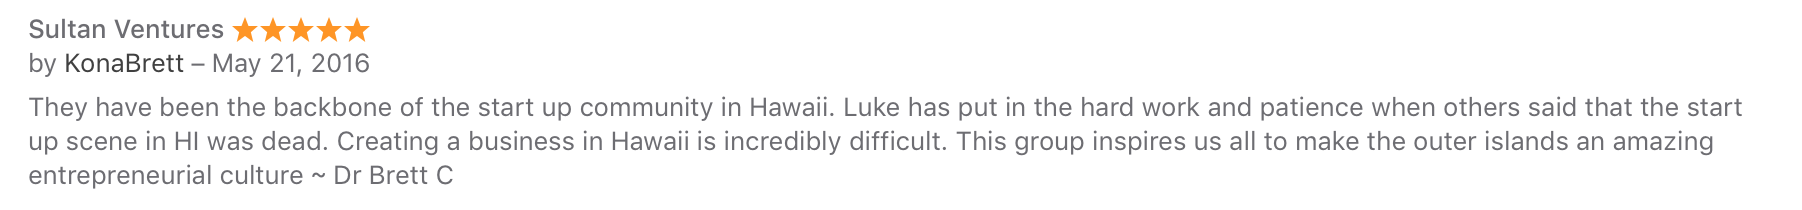 itunes review 1